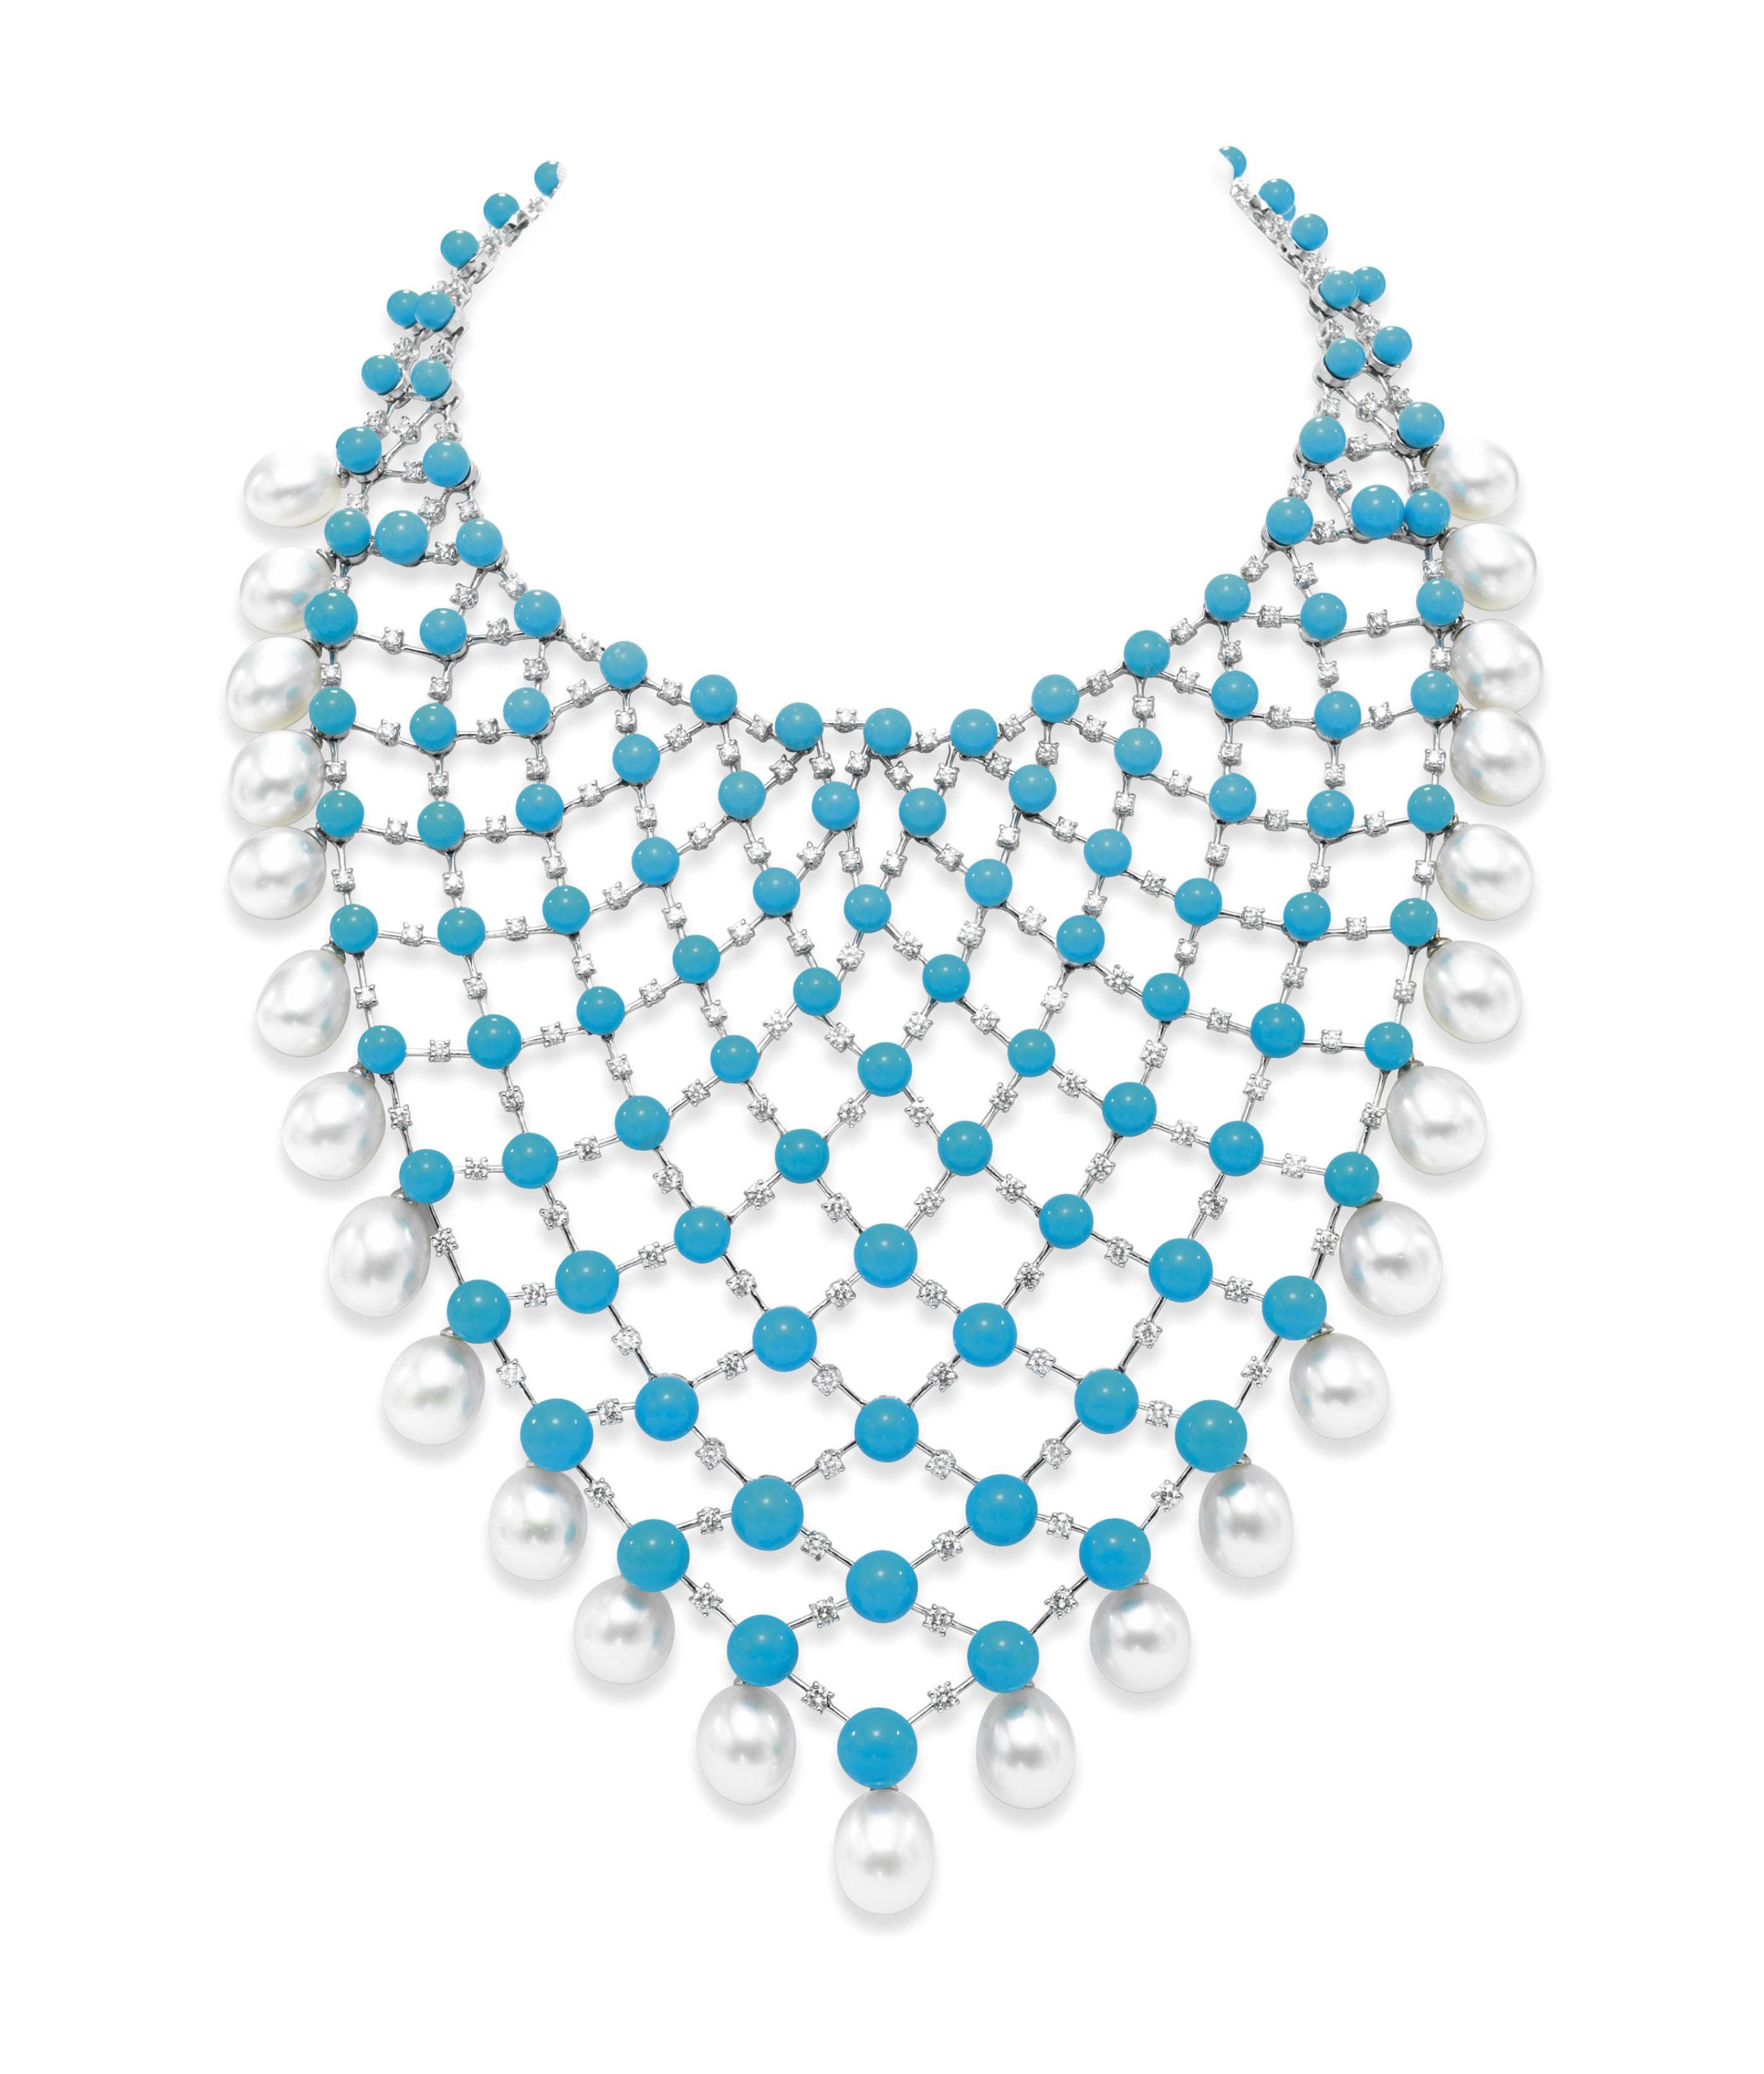 A DIAMOND, TURQUOISE AND CULTURED PEARL NECKLACE, BY HOUSE OF TAYLOR